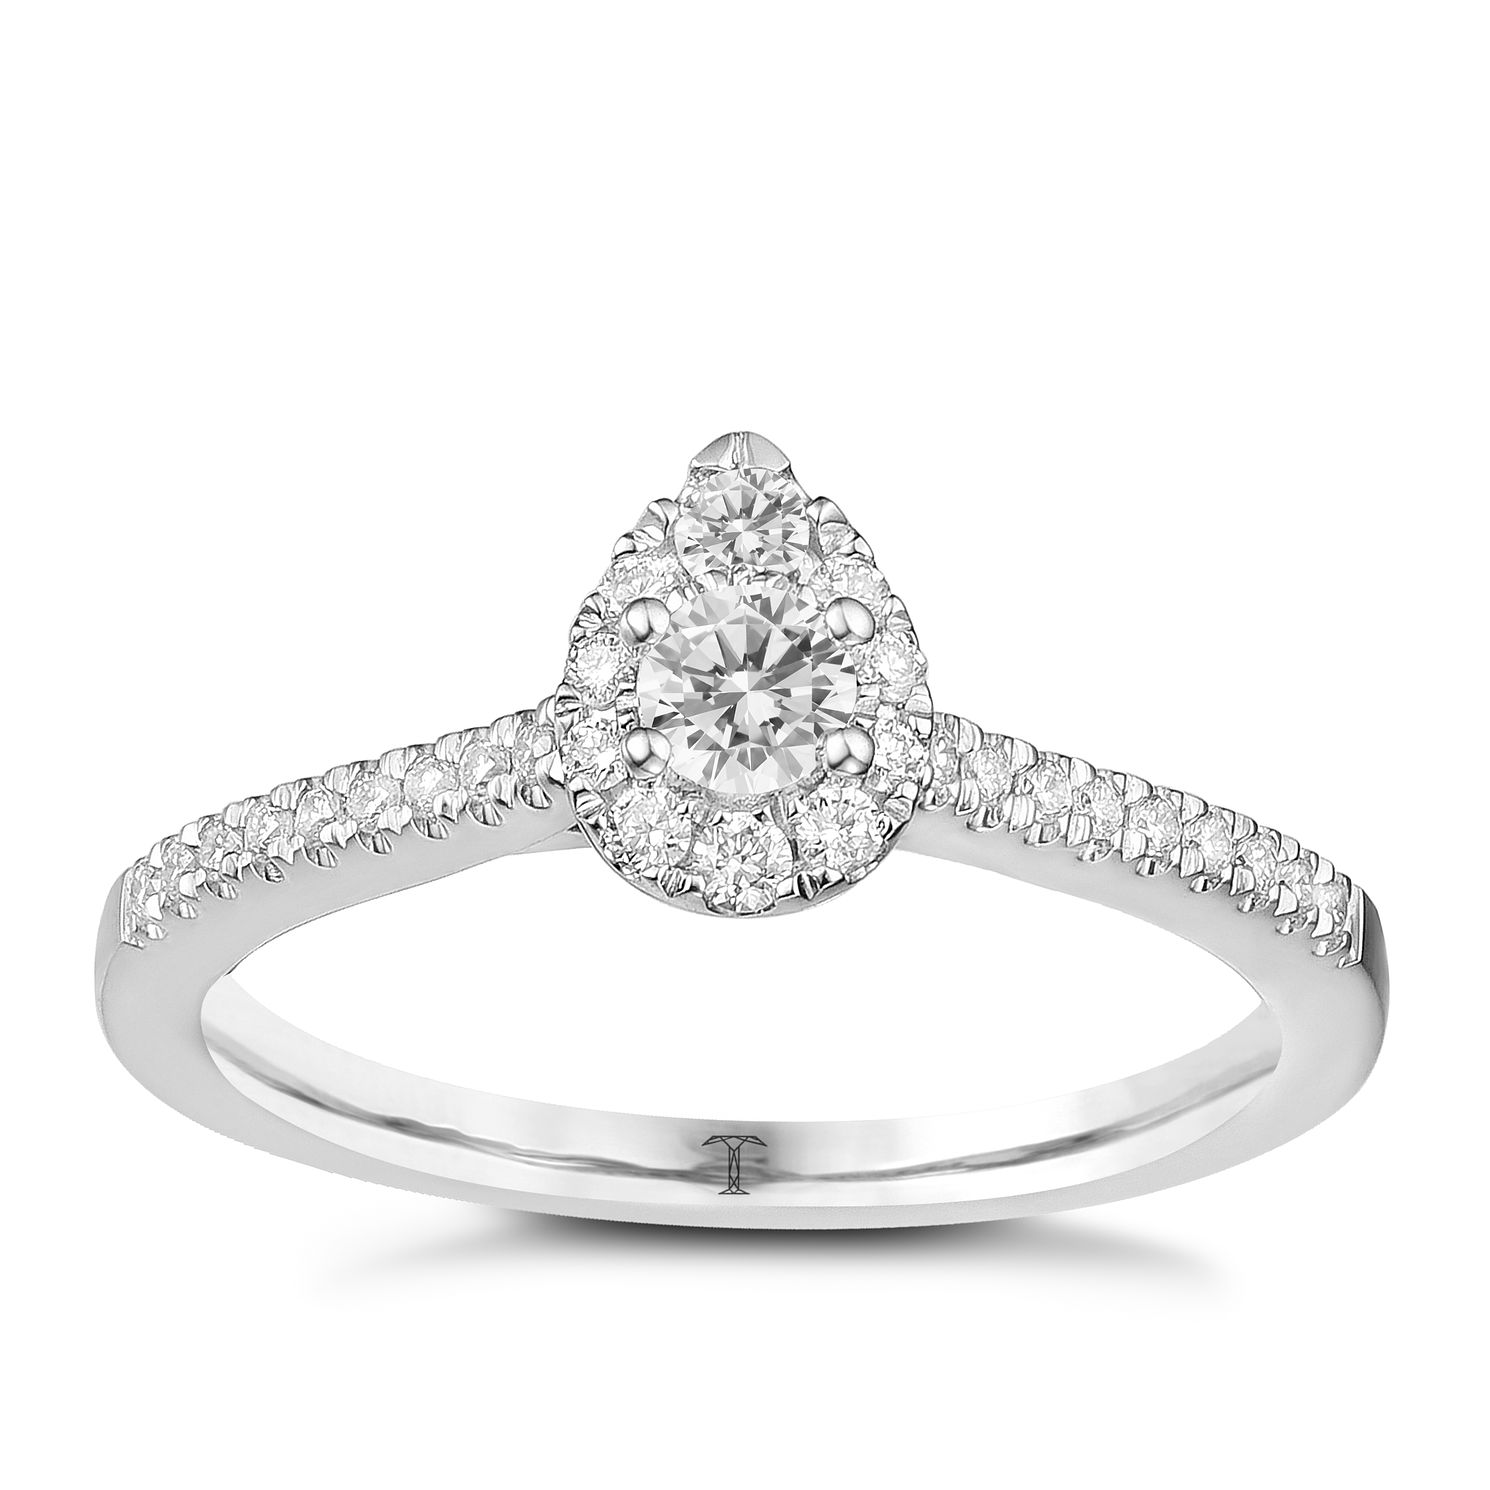 Tolkowsky 18ct White Gold 0.38ct Pear Halo Diamond Ring - Product number 8361134